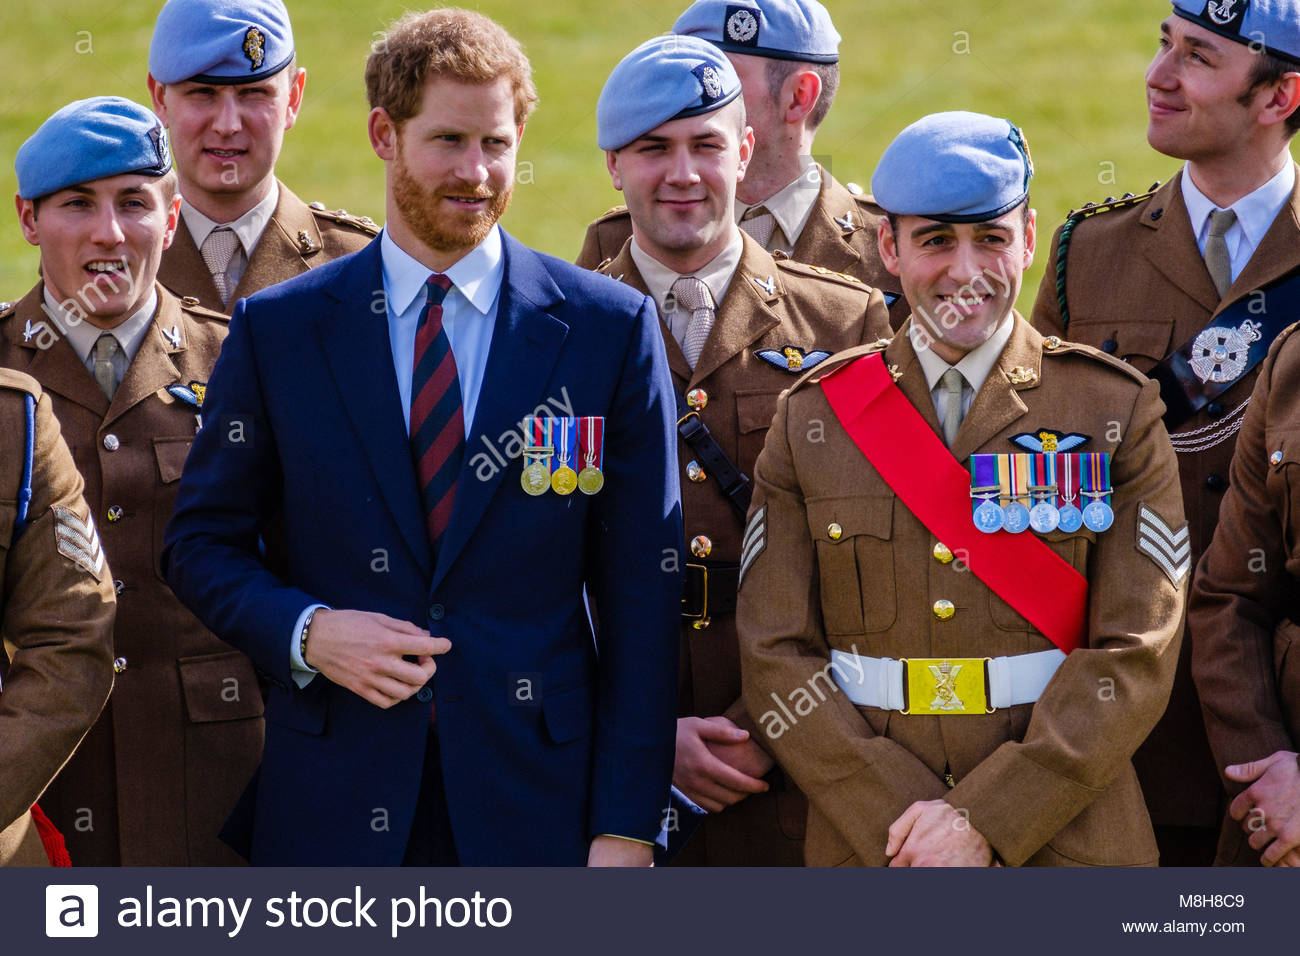 Prince Henry of Wales KCVO at the Museum of Army Flying, Middle Wallop on  Friday 16 March, 2018. Prince Harry returns to the Army Aviation Centre  where he